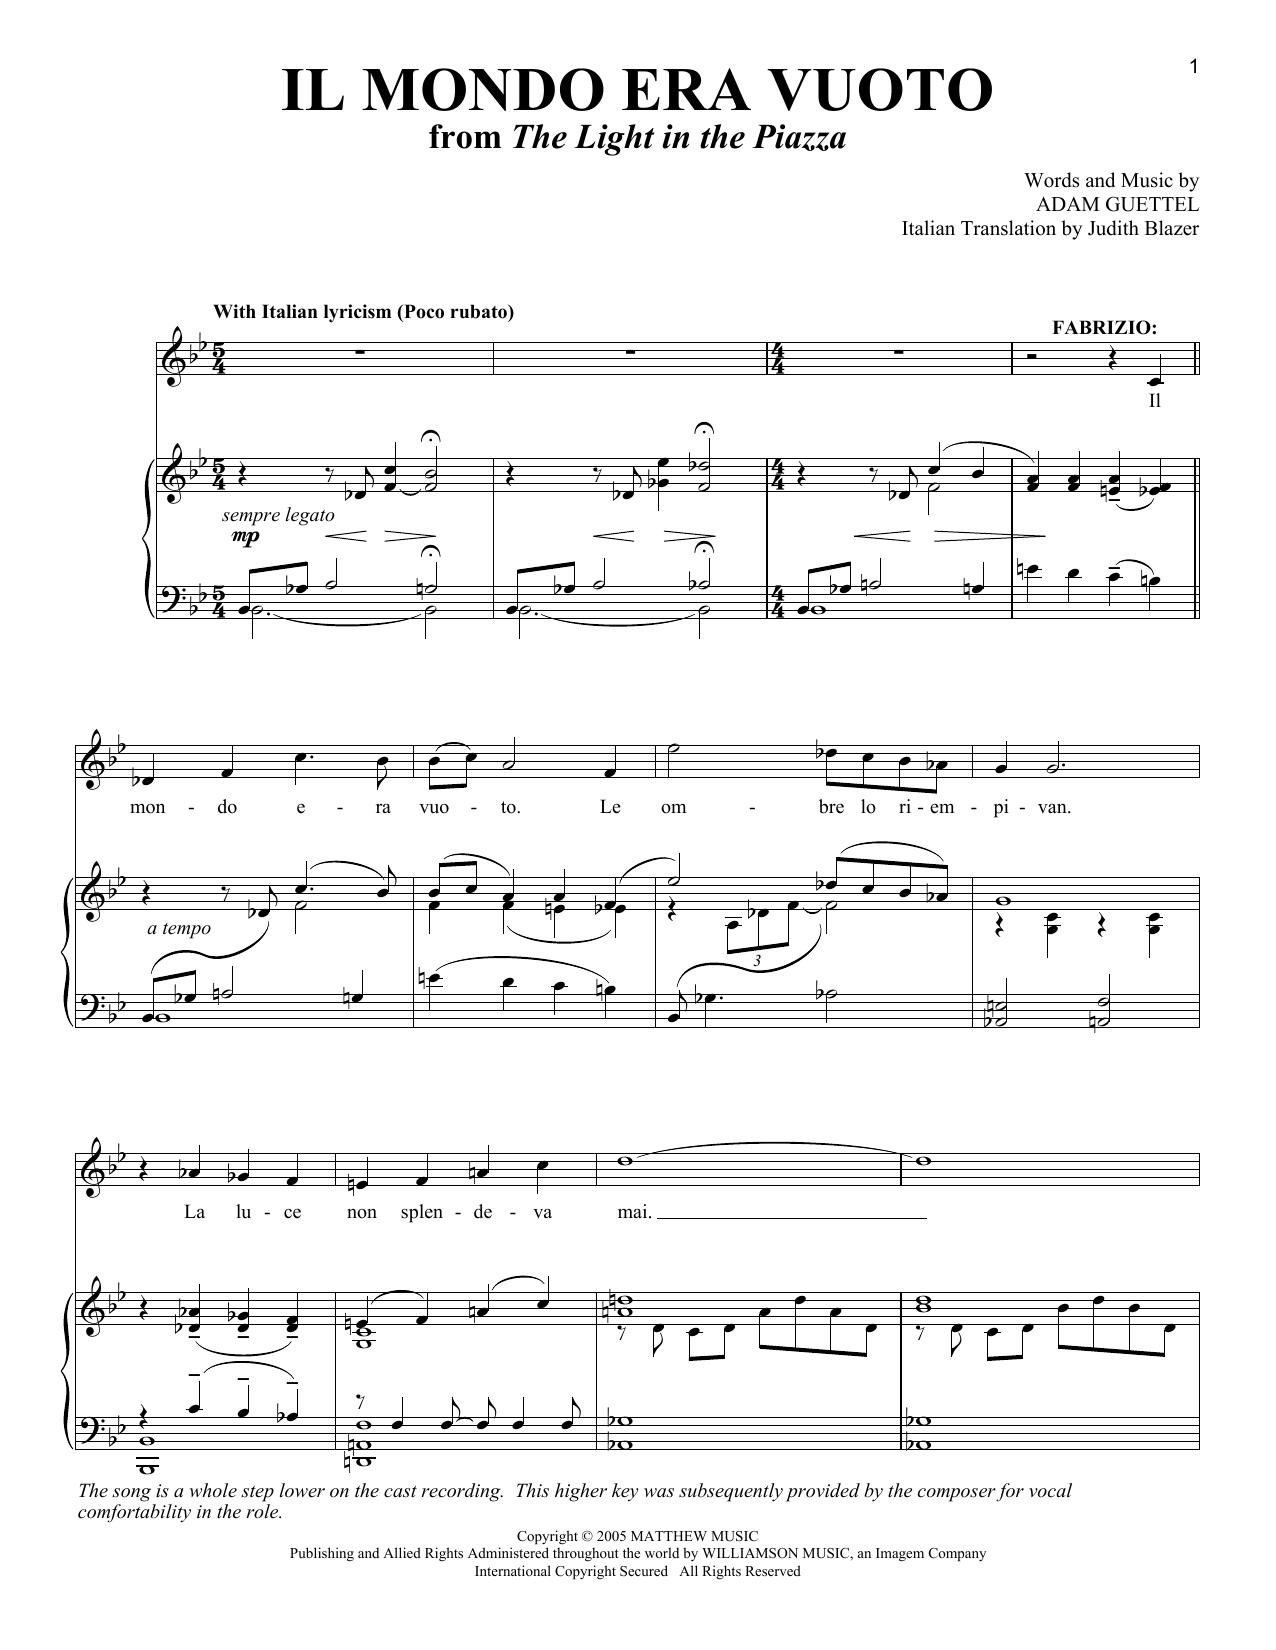 Il Mondo Era Vuoto sheet music for voice and piano by Judith Blazer